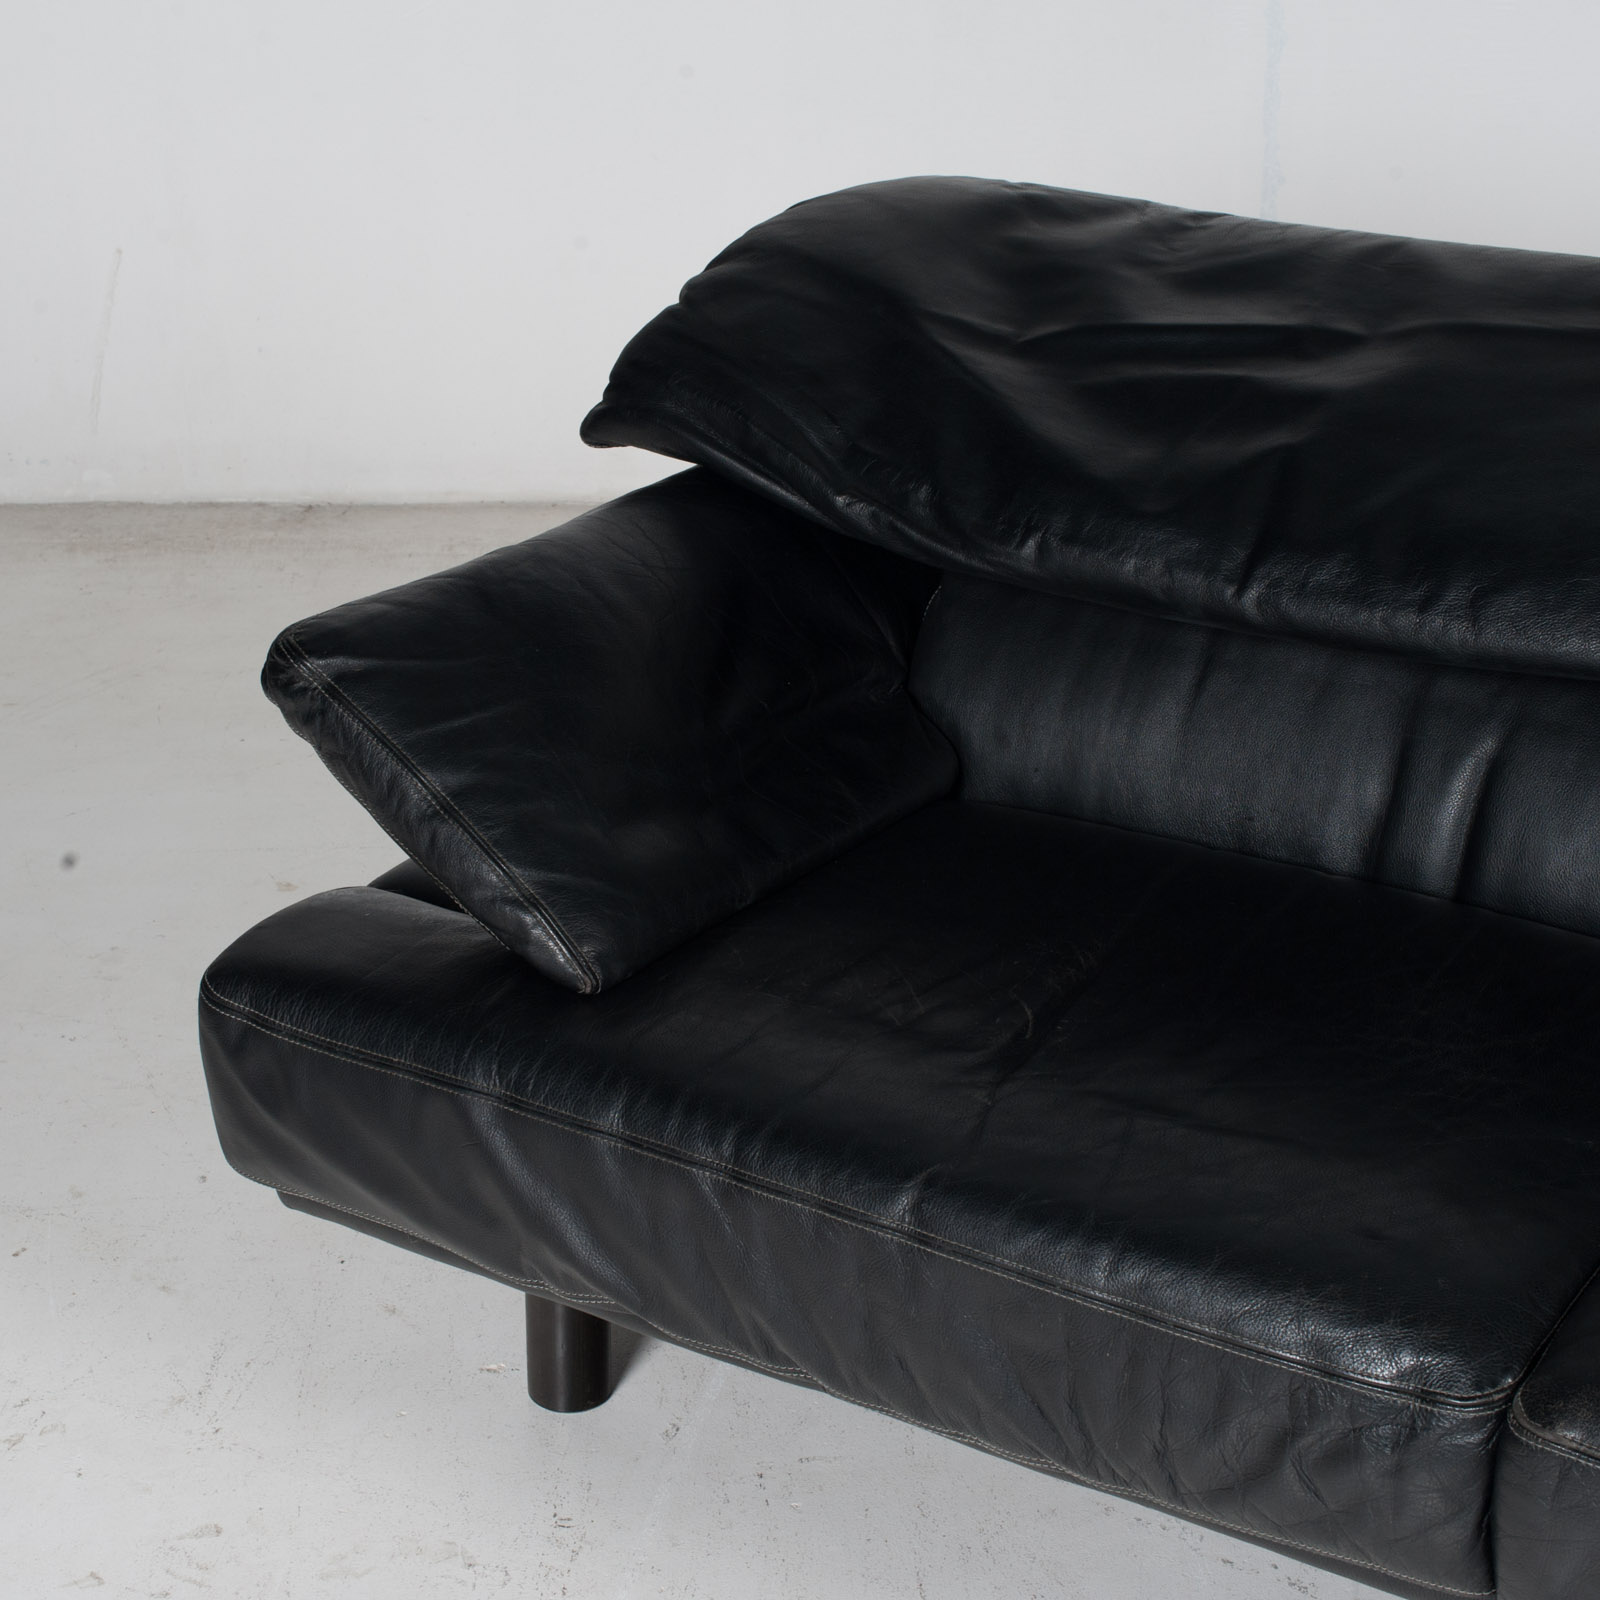 2 Seat Sofa In The Style Of Alanda By Paolo Piva For B&b Italia In Black Leather, 1980s, Italy It 9